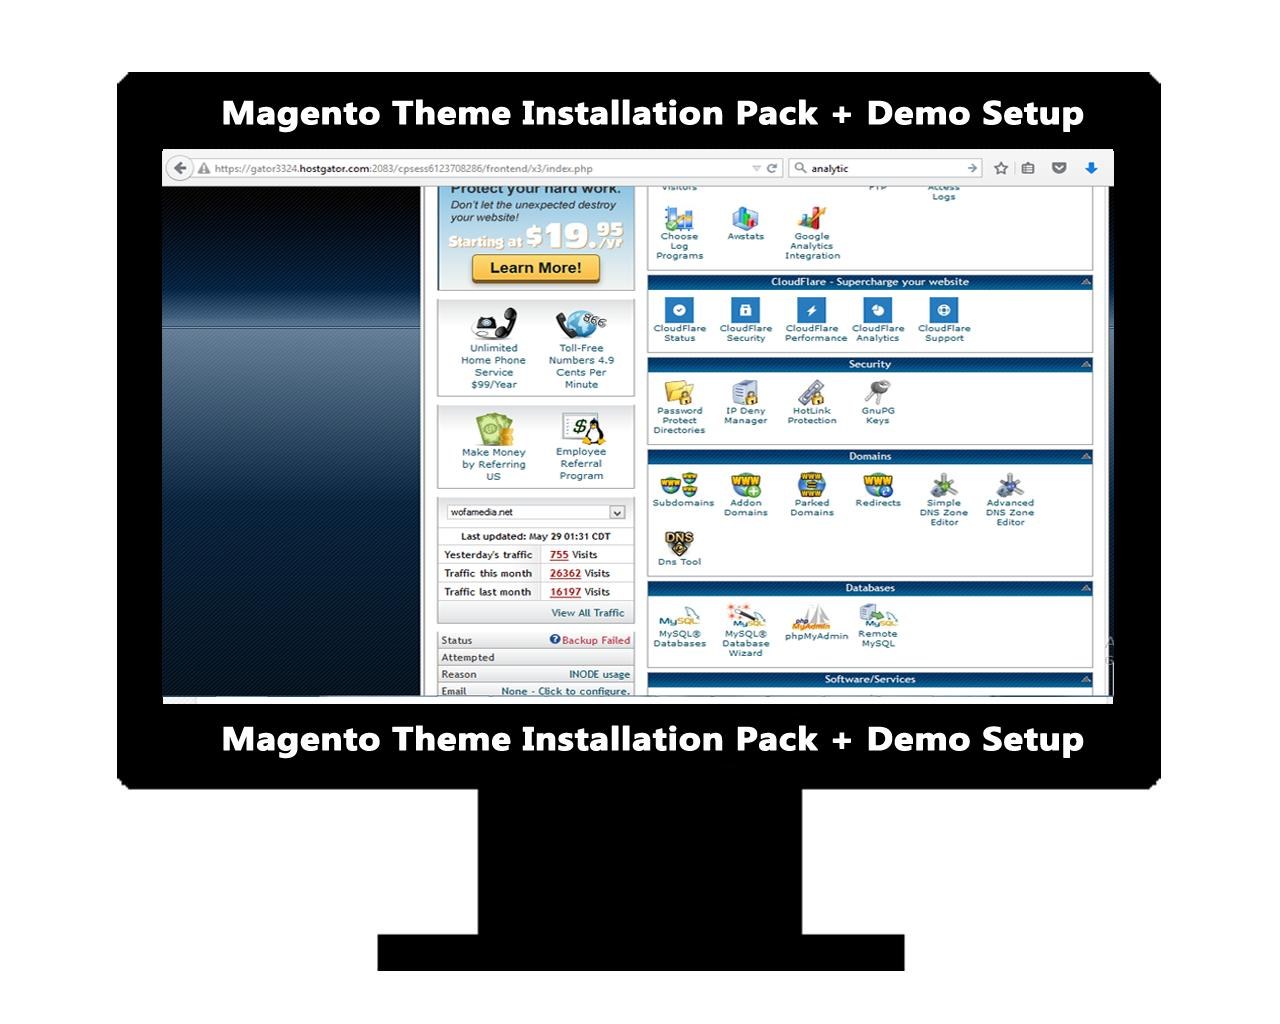 Magento Theme Installation (Include Demo Setup & Logo Setup) by AritonangWofa - 92440